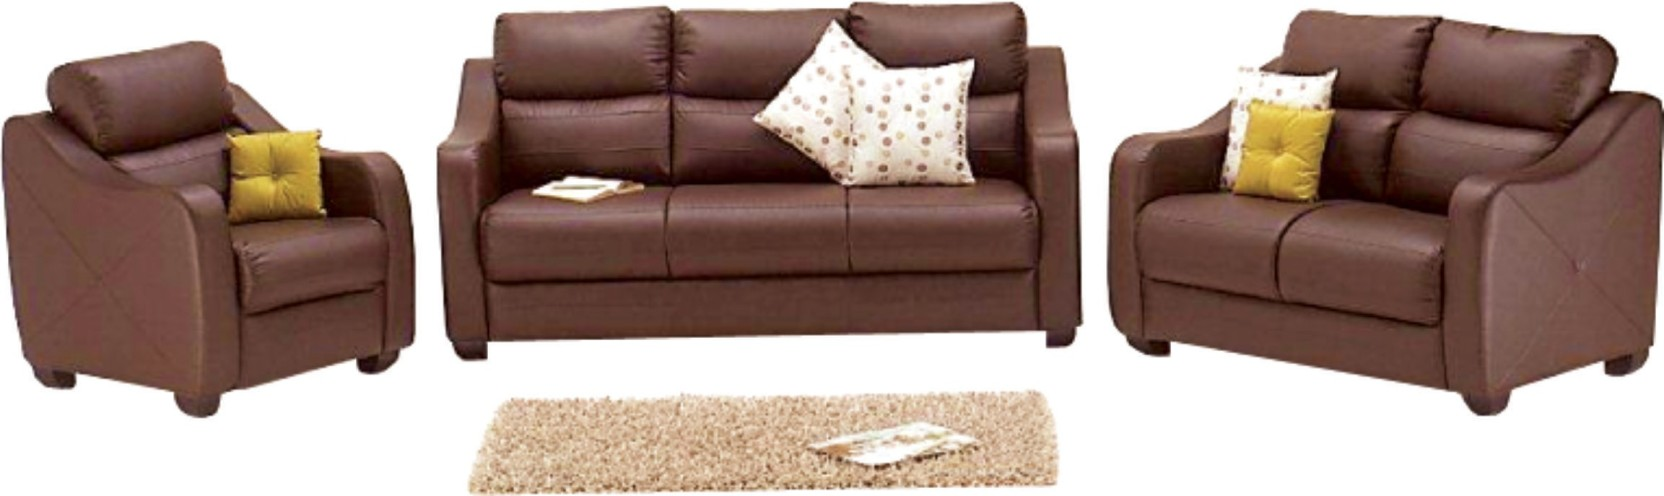 Godrej Interio Vida Sofa Set Leatherette 3 2 1 Burgundy Drkevin Leather Shoes 13301 Maroon 43 Share